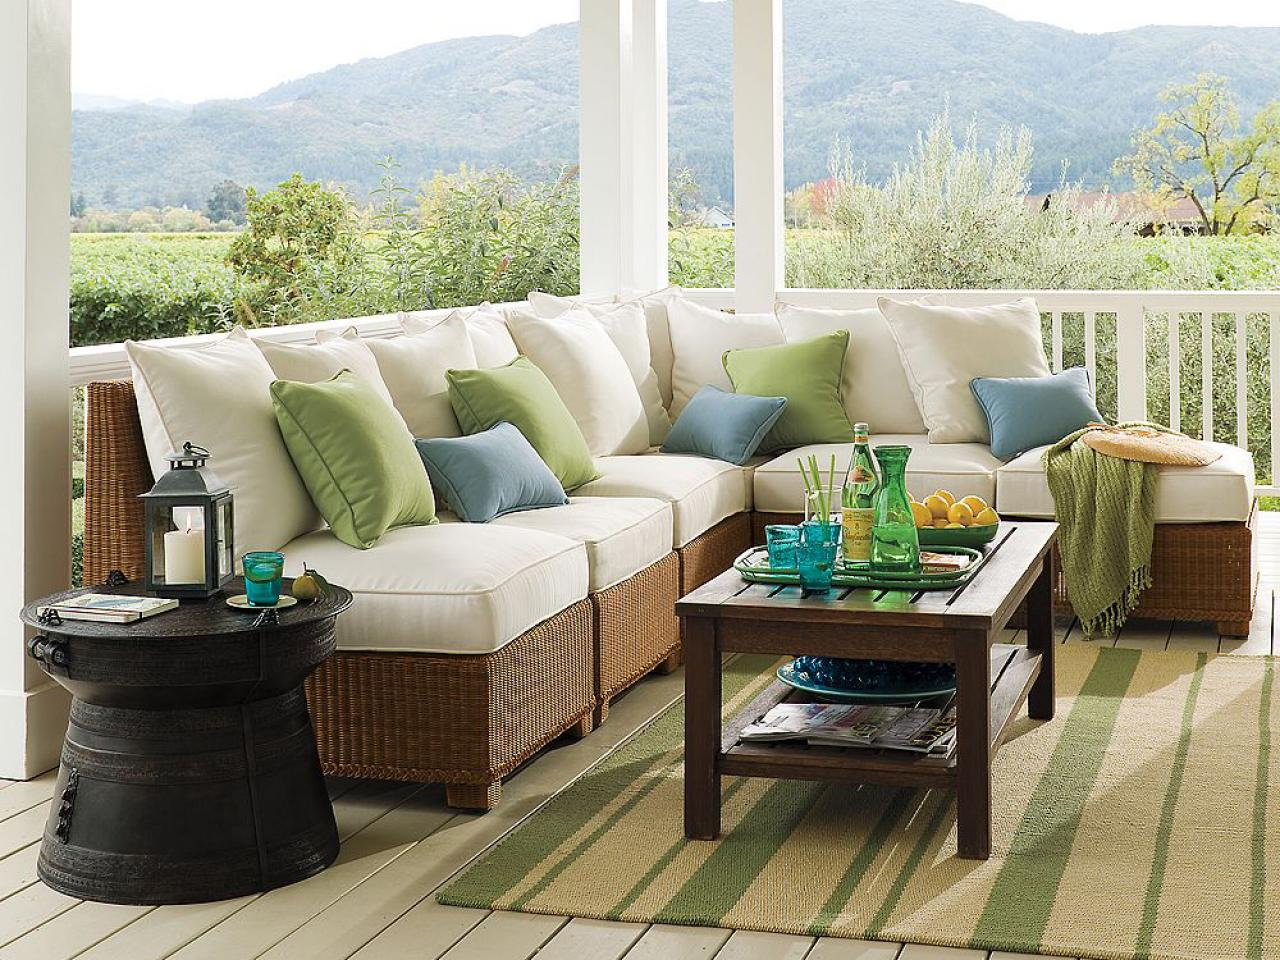 Mix and match outdoor accent pillows outdoor spaces Outside veranda designs